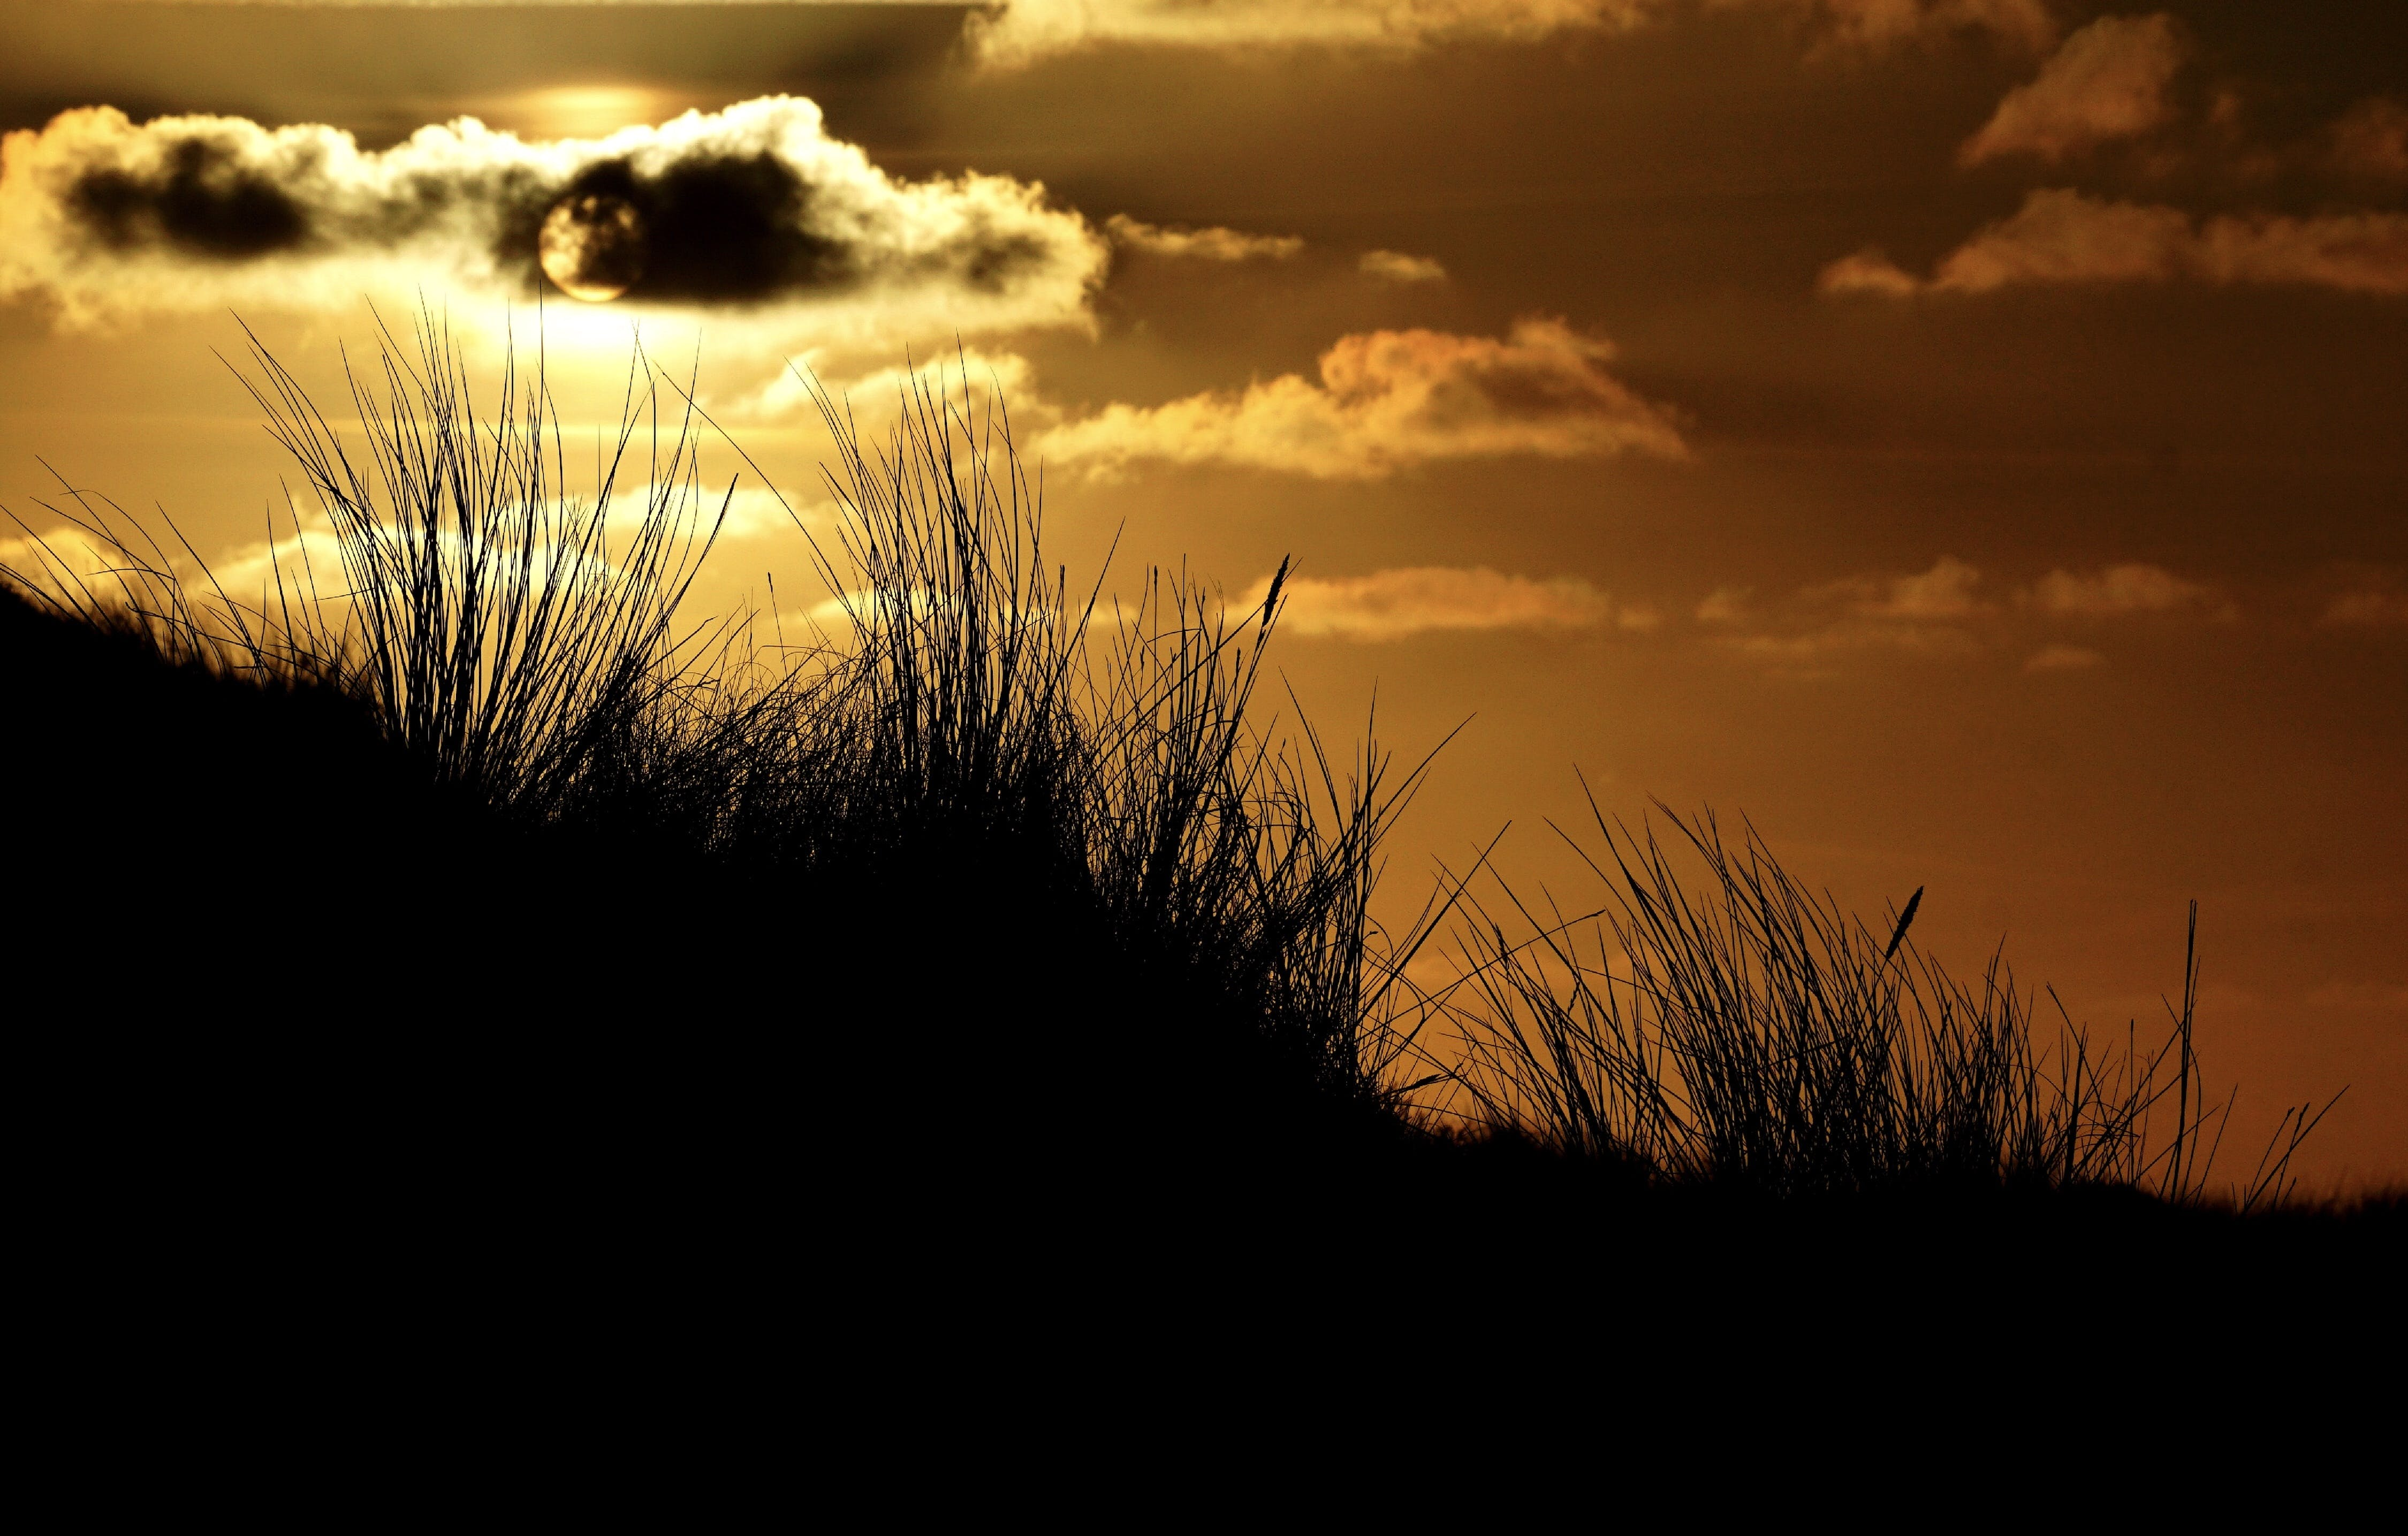 Silhouette of Grass and Skies